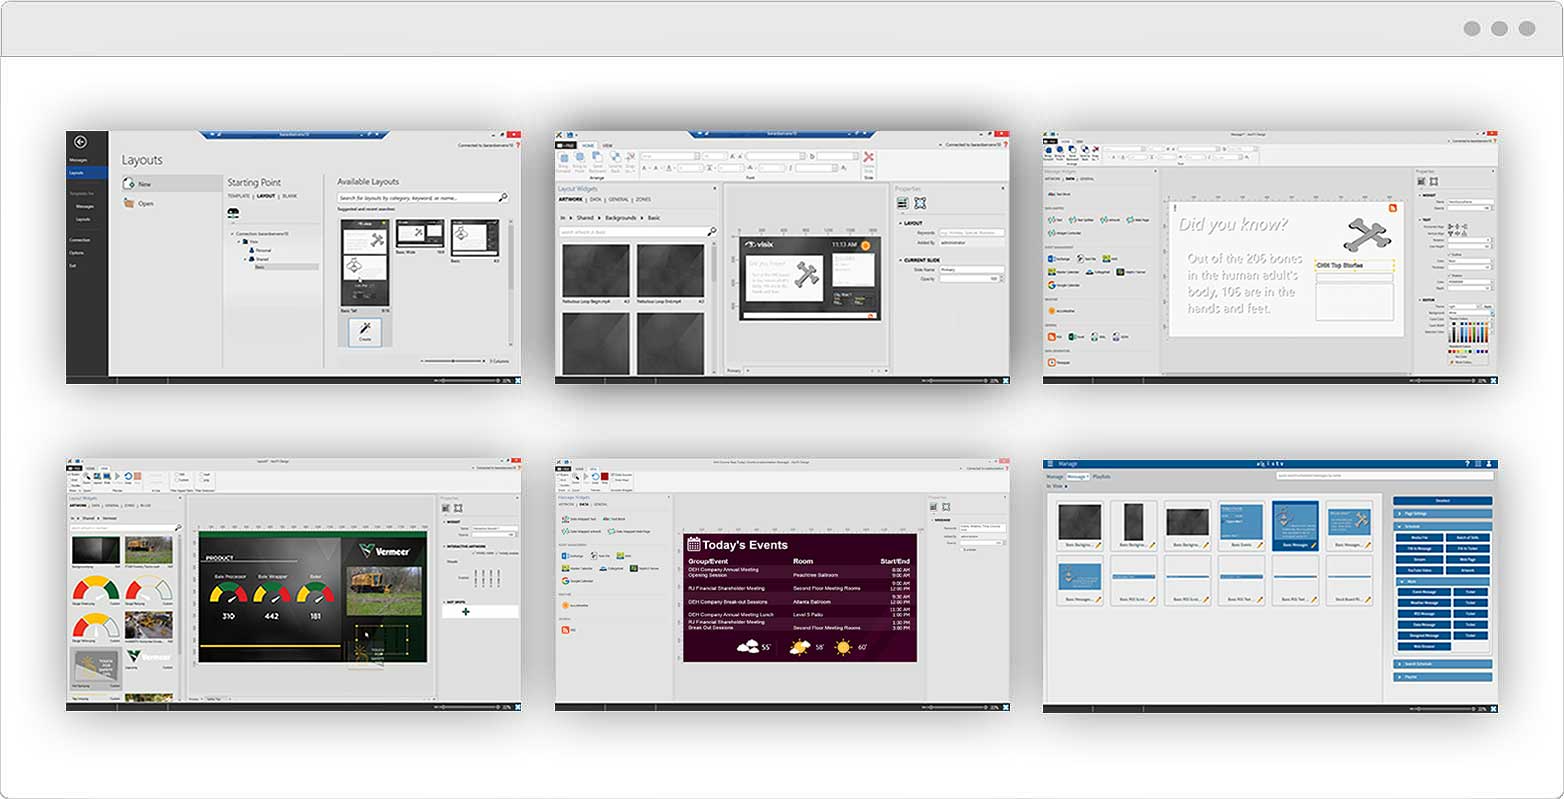 Design, import and schedule messages in just seconds using three of our easy, powerful Signage Suite apps: - AxisTV Design, the desktop design app - AxisTV Manage, the content management system (CMS) - AxisTV Engage, the playback engine